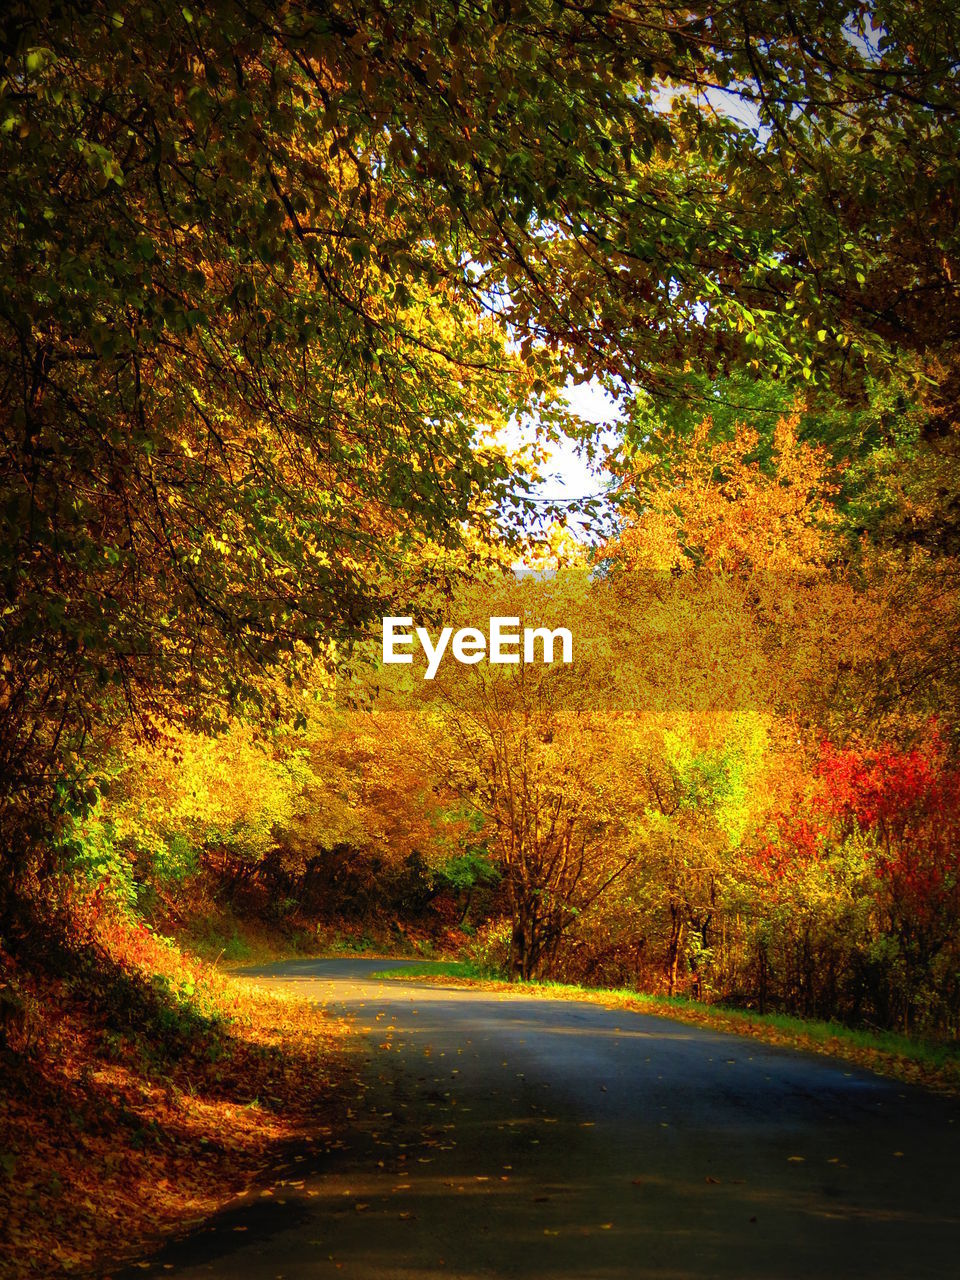 tree, plant, autumn, tranquility, change, beauty in nature, nature, growth, road, tranquil scene, no people, land, forest, direction, scenics - nature, day, the way forward, outdoors, orange color, transportation